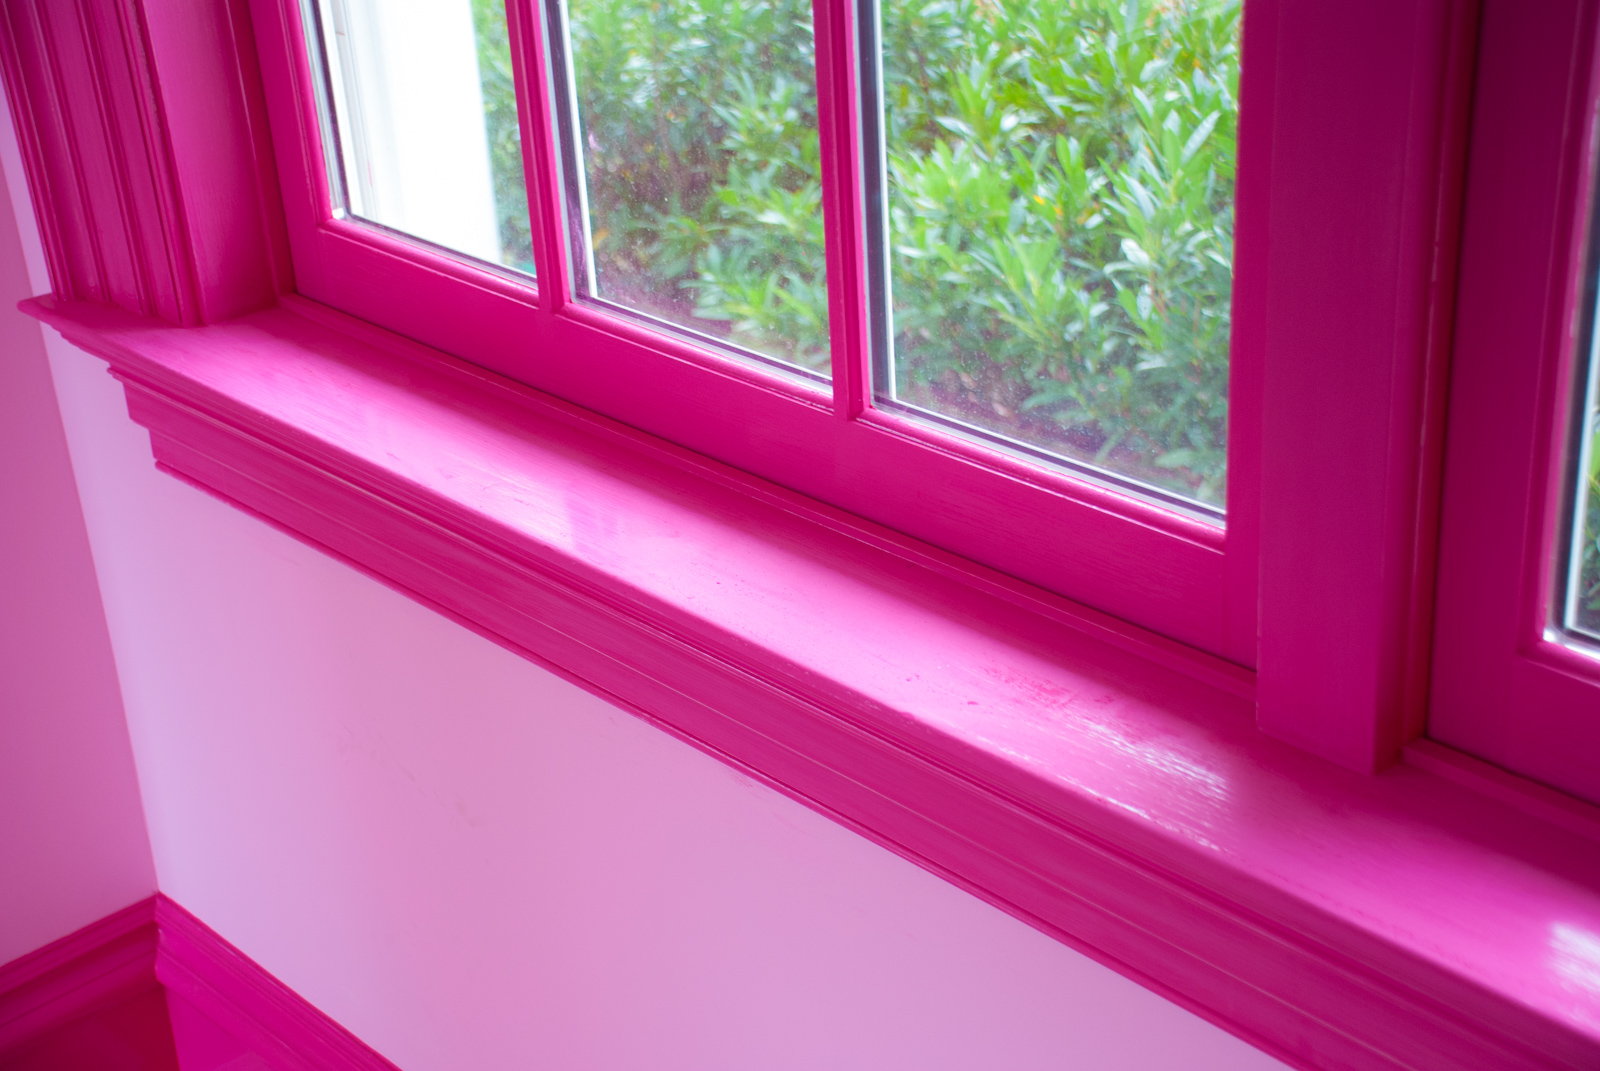 DSC_2472.jpg - In the room that will become my study, the glossy pink paint has been sanded.